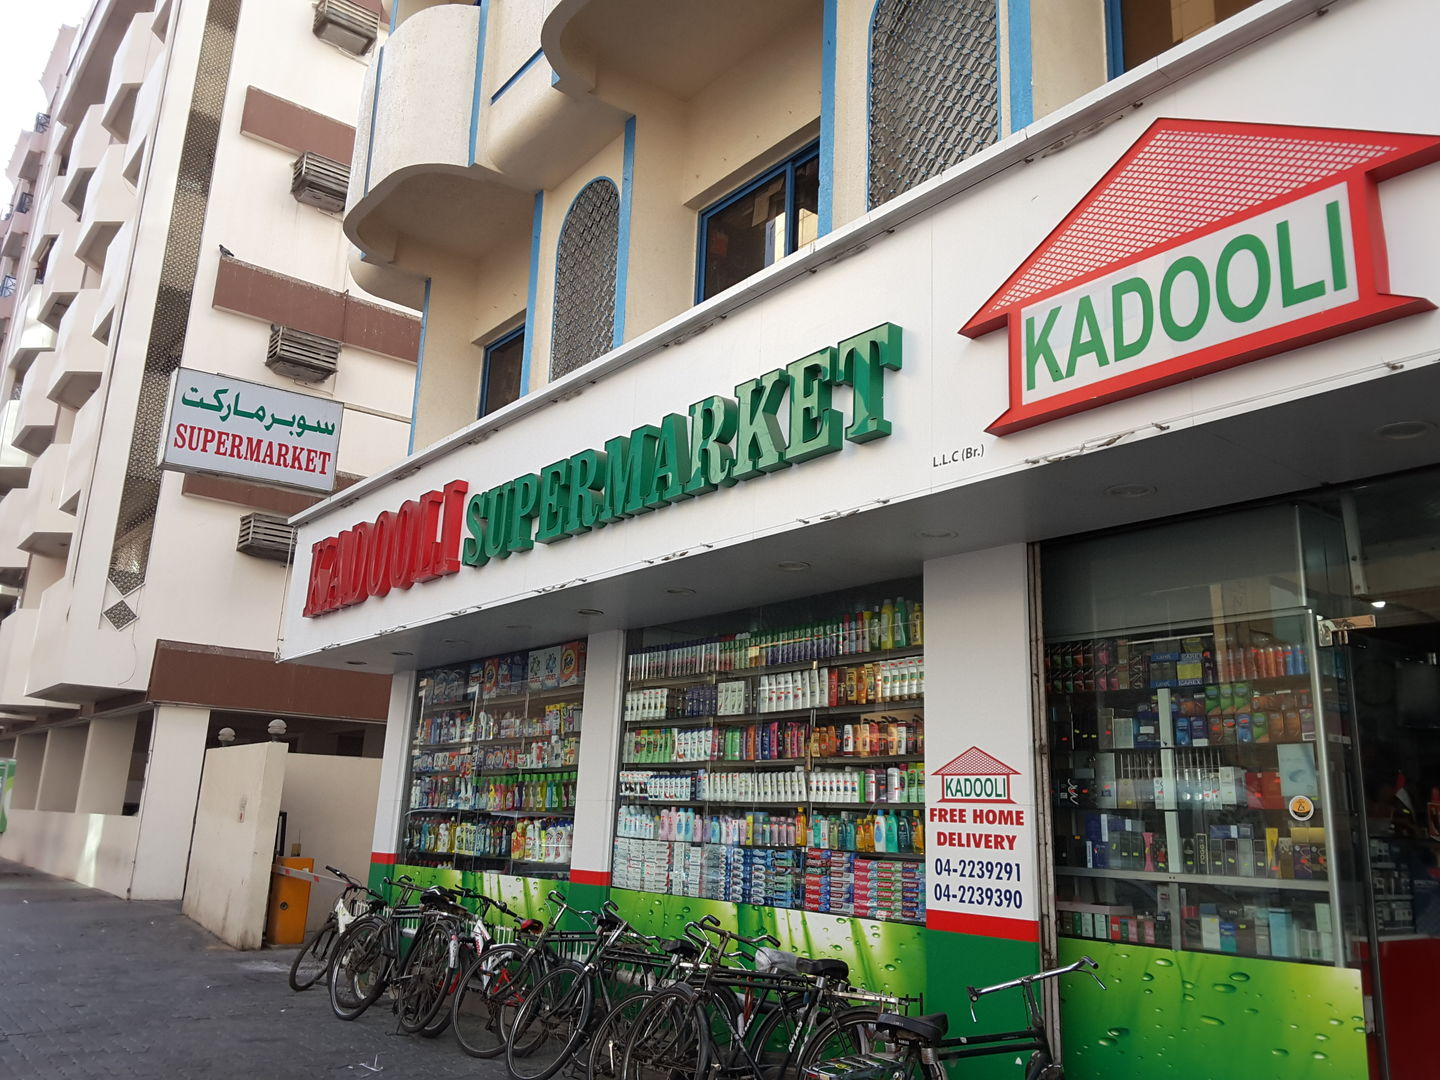 HiDubai-business-kadooli-supermarket-food-beverage-supermarkets-hypermarkets-grocery-stores-al-muraqqabat-dubai-2